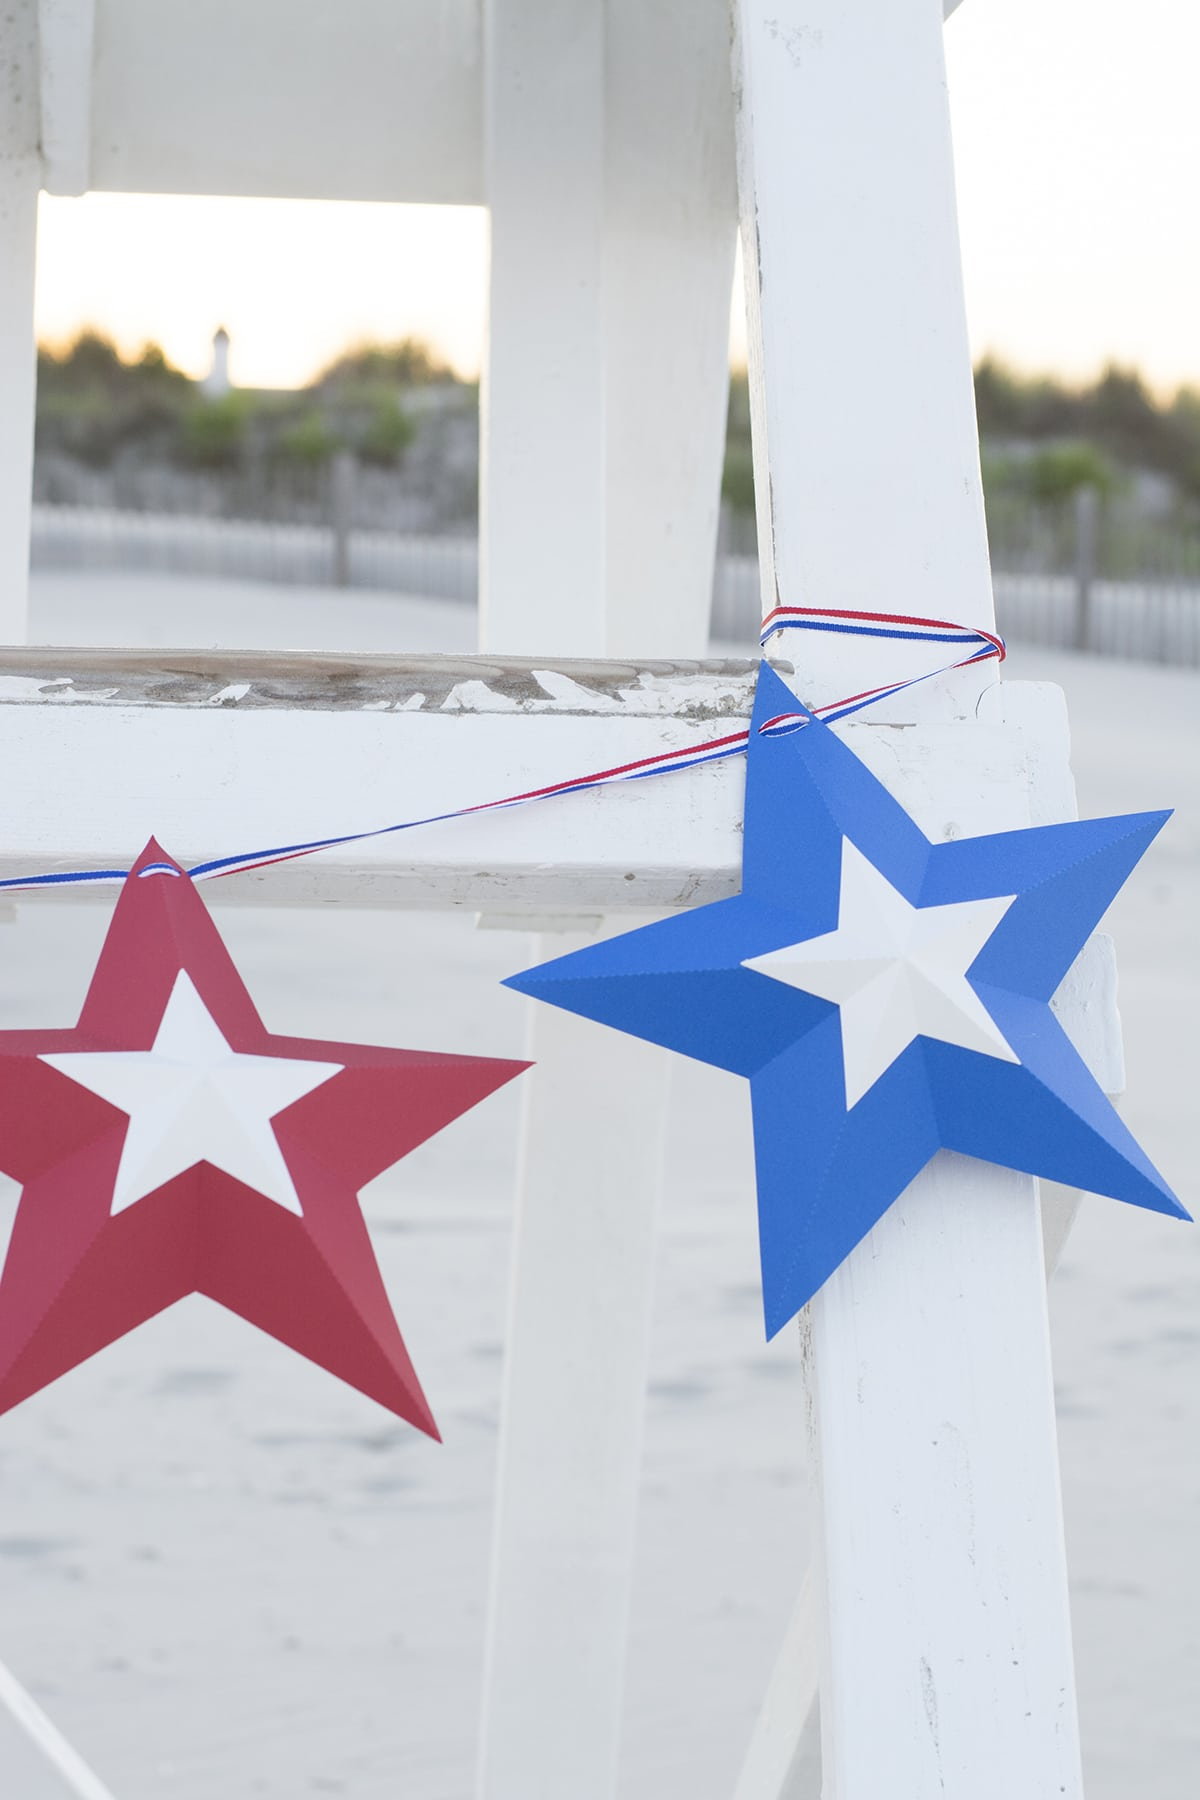 fourth of July star bunting hanging on a lifeguard stand